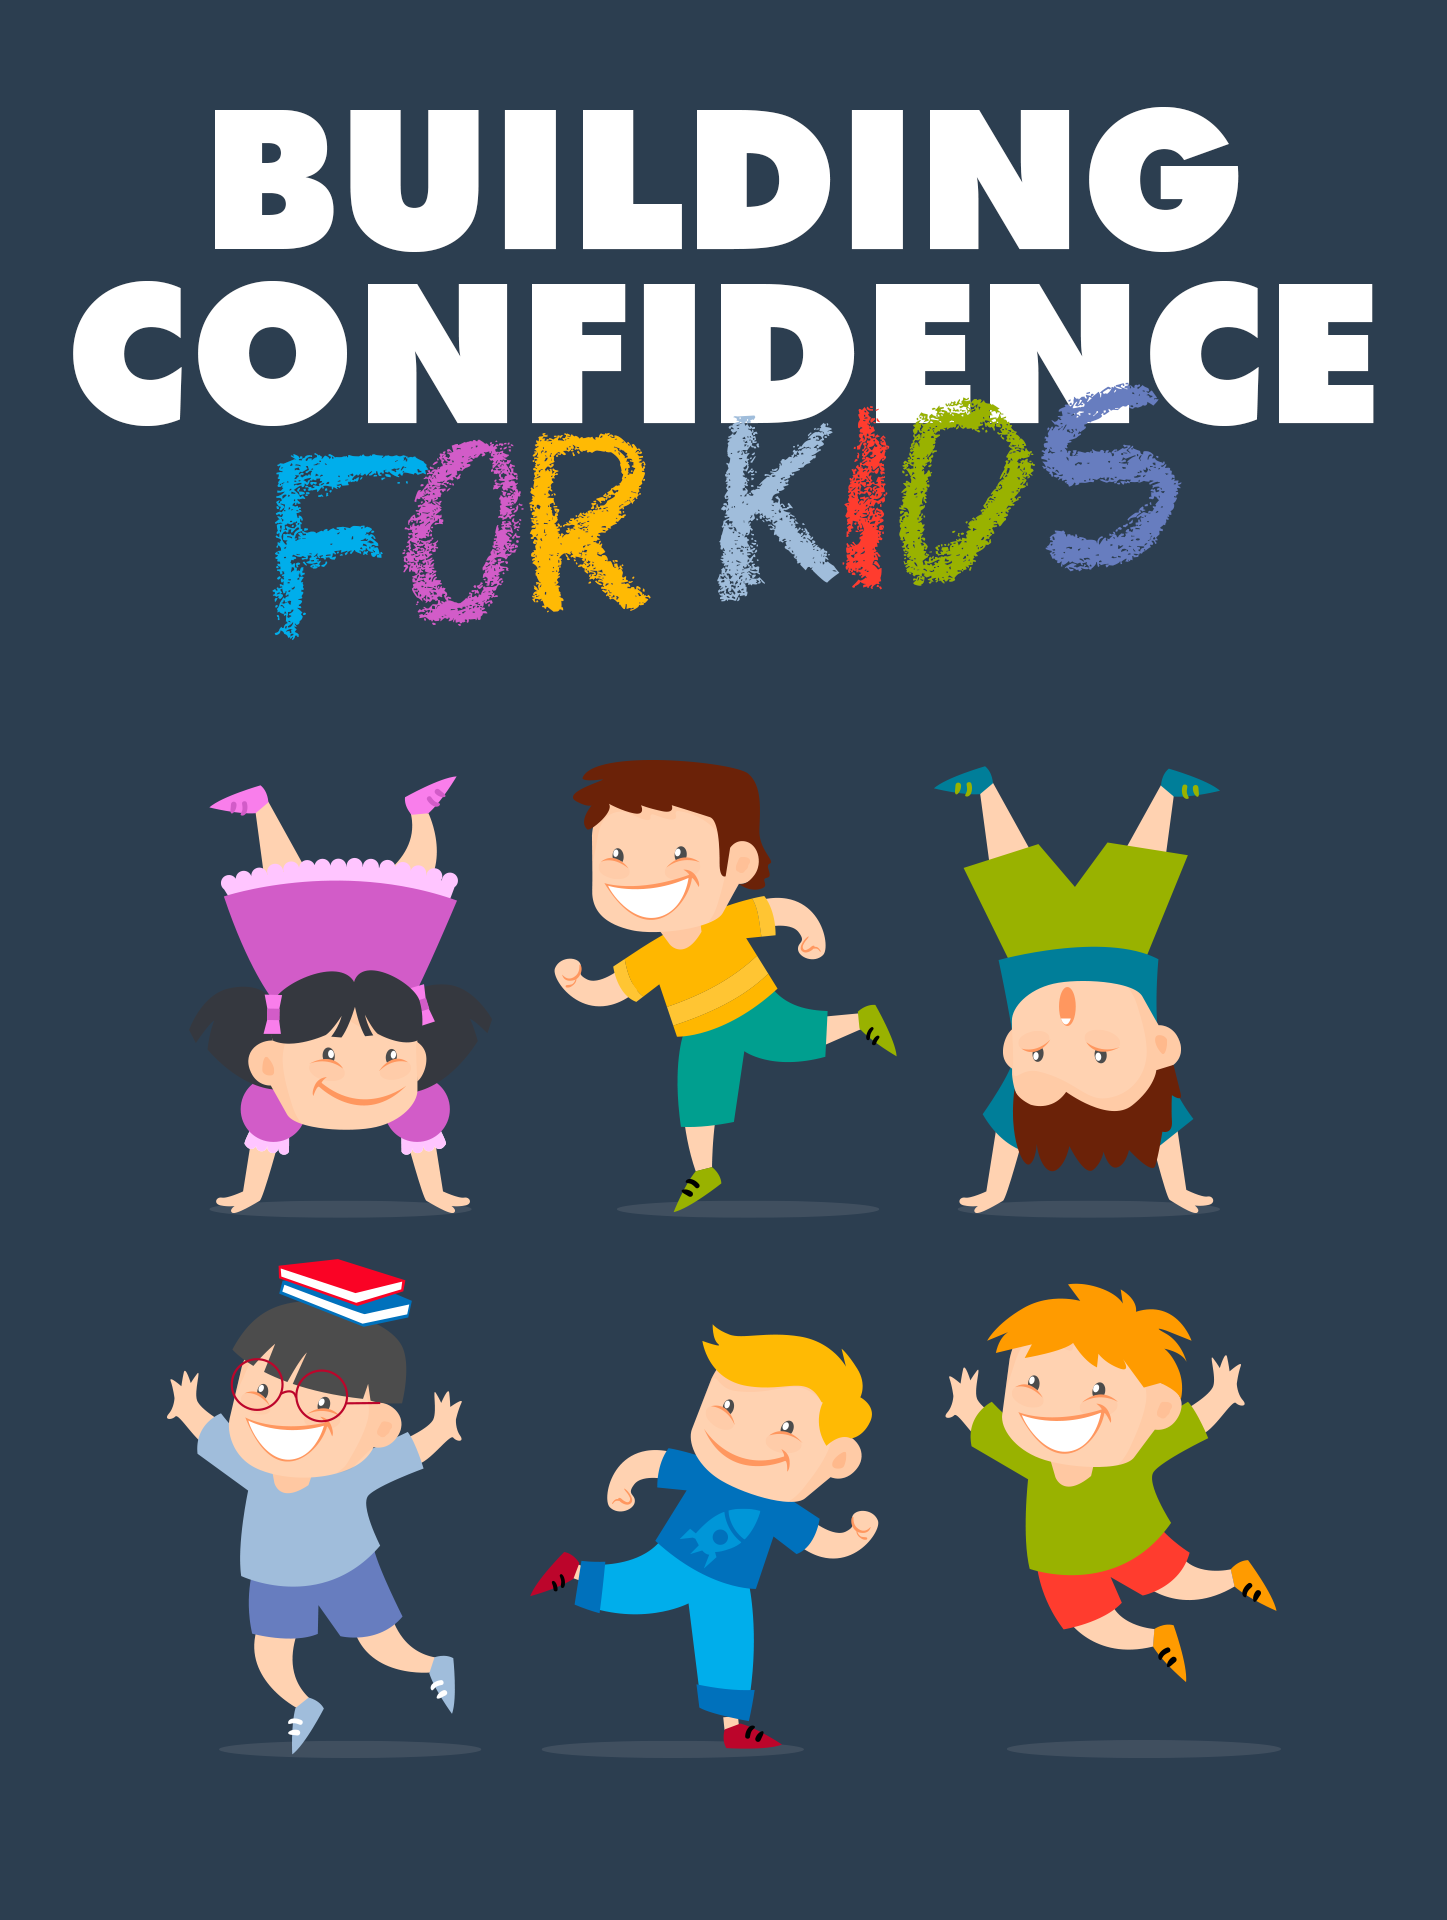 Building Confidence for kids useful for kids